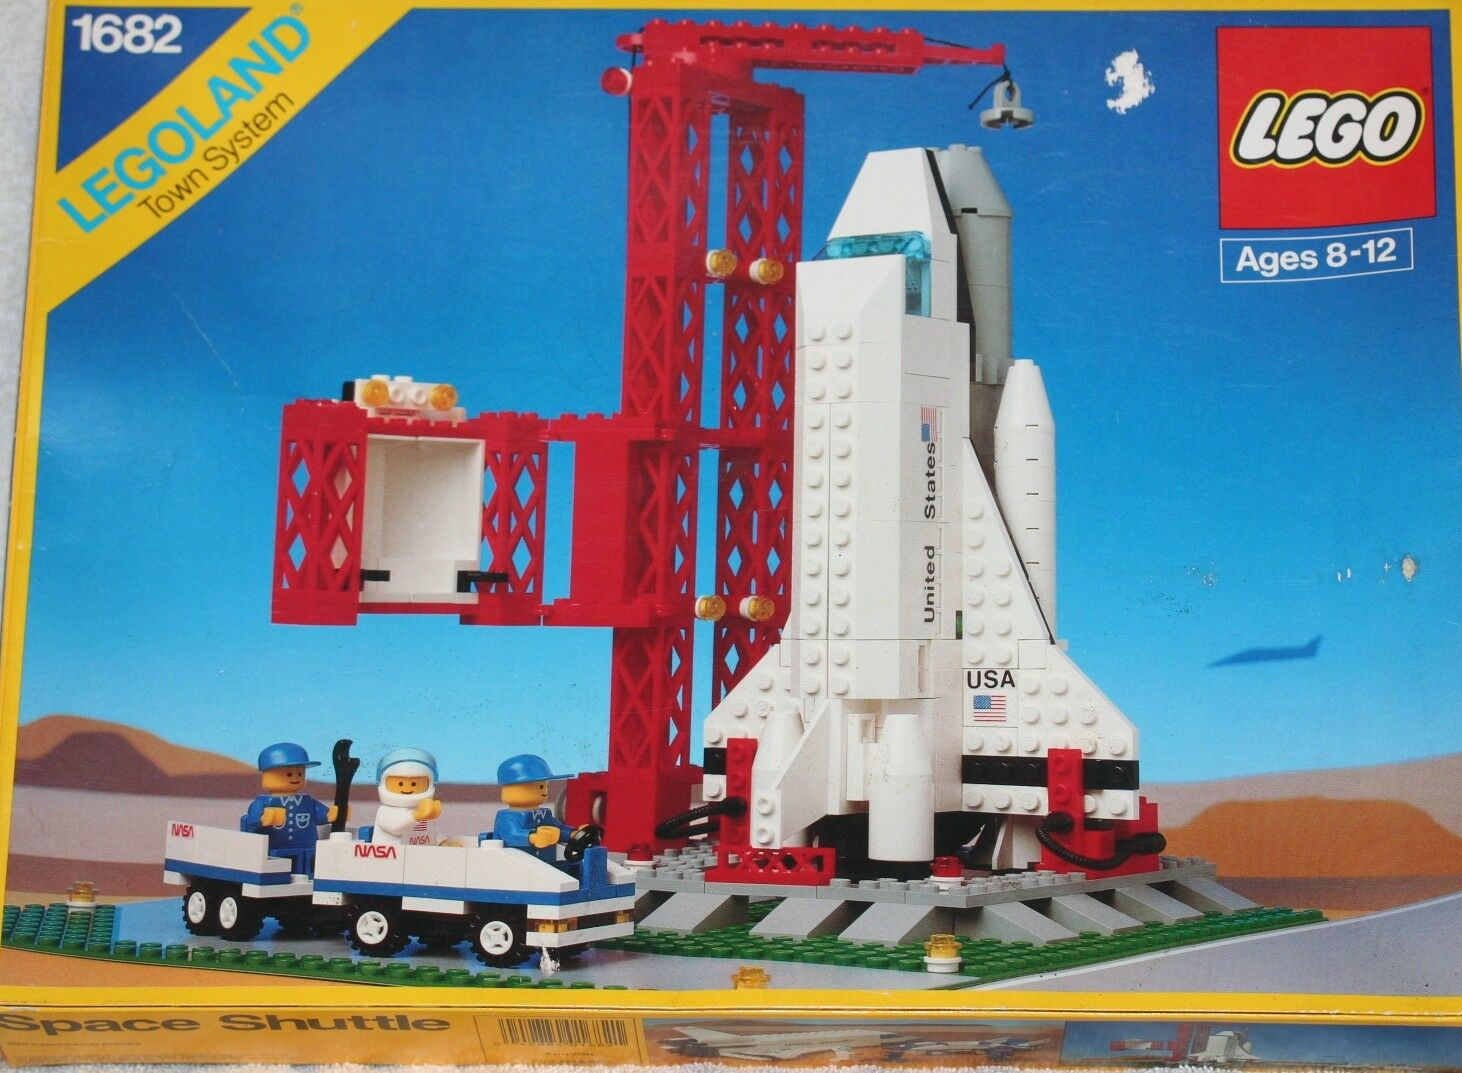 LEGO LEGOLAND TOWN SYSTEM,SPACE SHUTTLE WITH WITH WITH GANTRY,USED c1969e